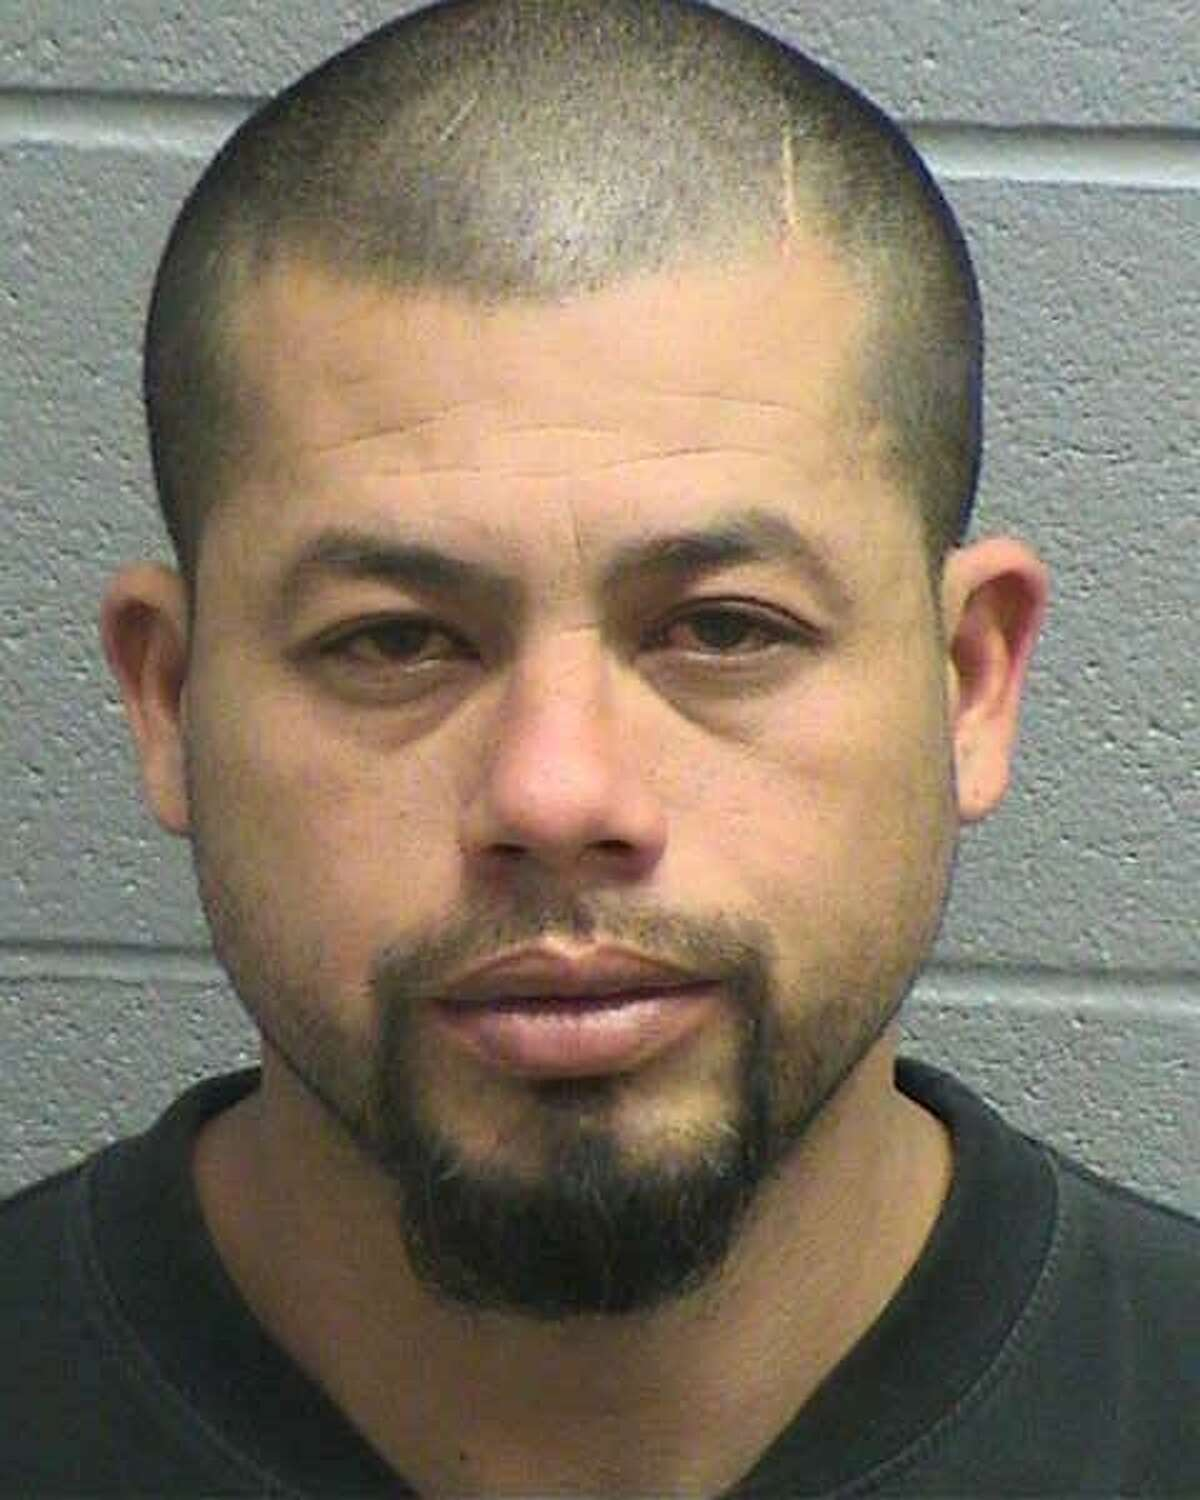 Jesus Omar Grajeda, 37, of El Paso, was arrested March 25 on a second-degree felony charge of aggravated assault with a deadly weapon. He also was arrested for public intoxication, a class C misdemeanor.Grajeda tried to assault a woman with a box cutter after she refused to buy him some crack cocaine, according to the arrest affidavit.If convicted, Grajeda faces up to 20 years in prison.